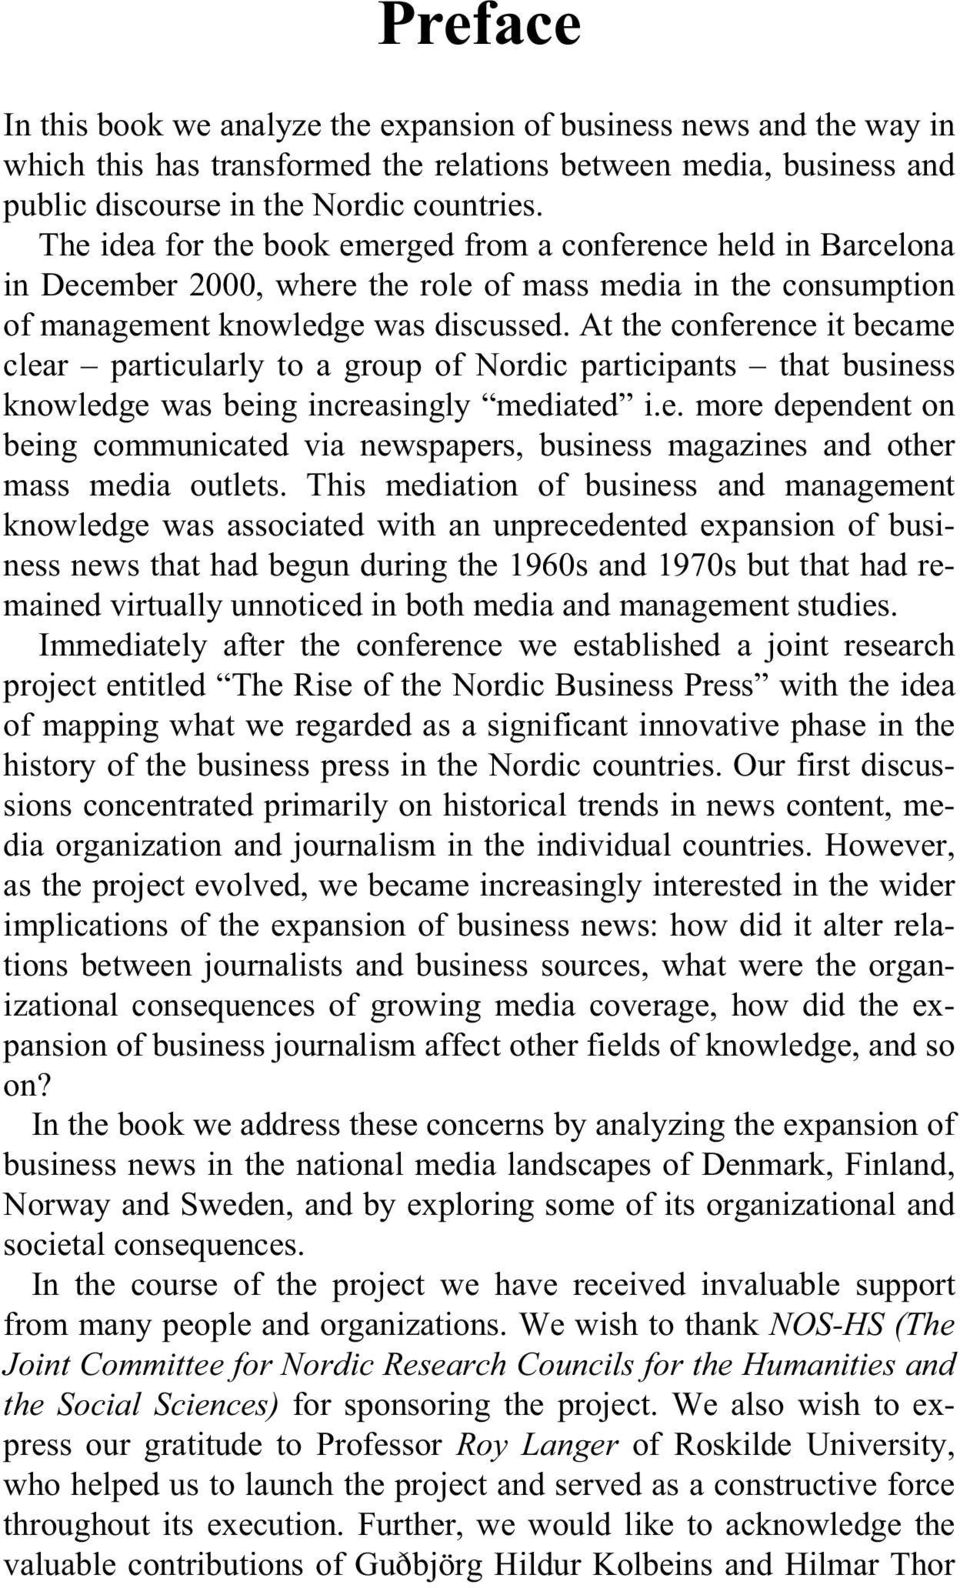 At the conference it became clear particularly to a group of Nordic participants that business knowledge was being increasingly mediated i.e. more dependent on being communicated via newspapers, business magazines and other mass media outlets.